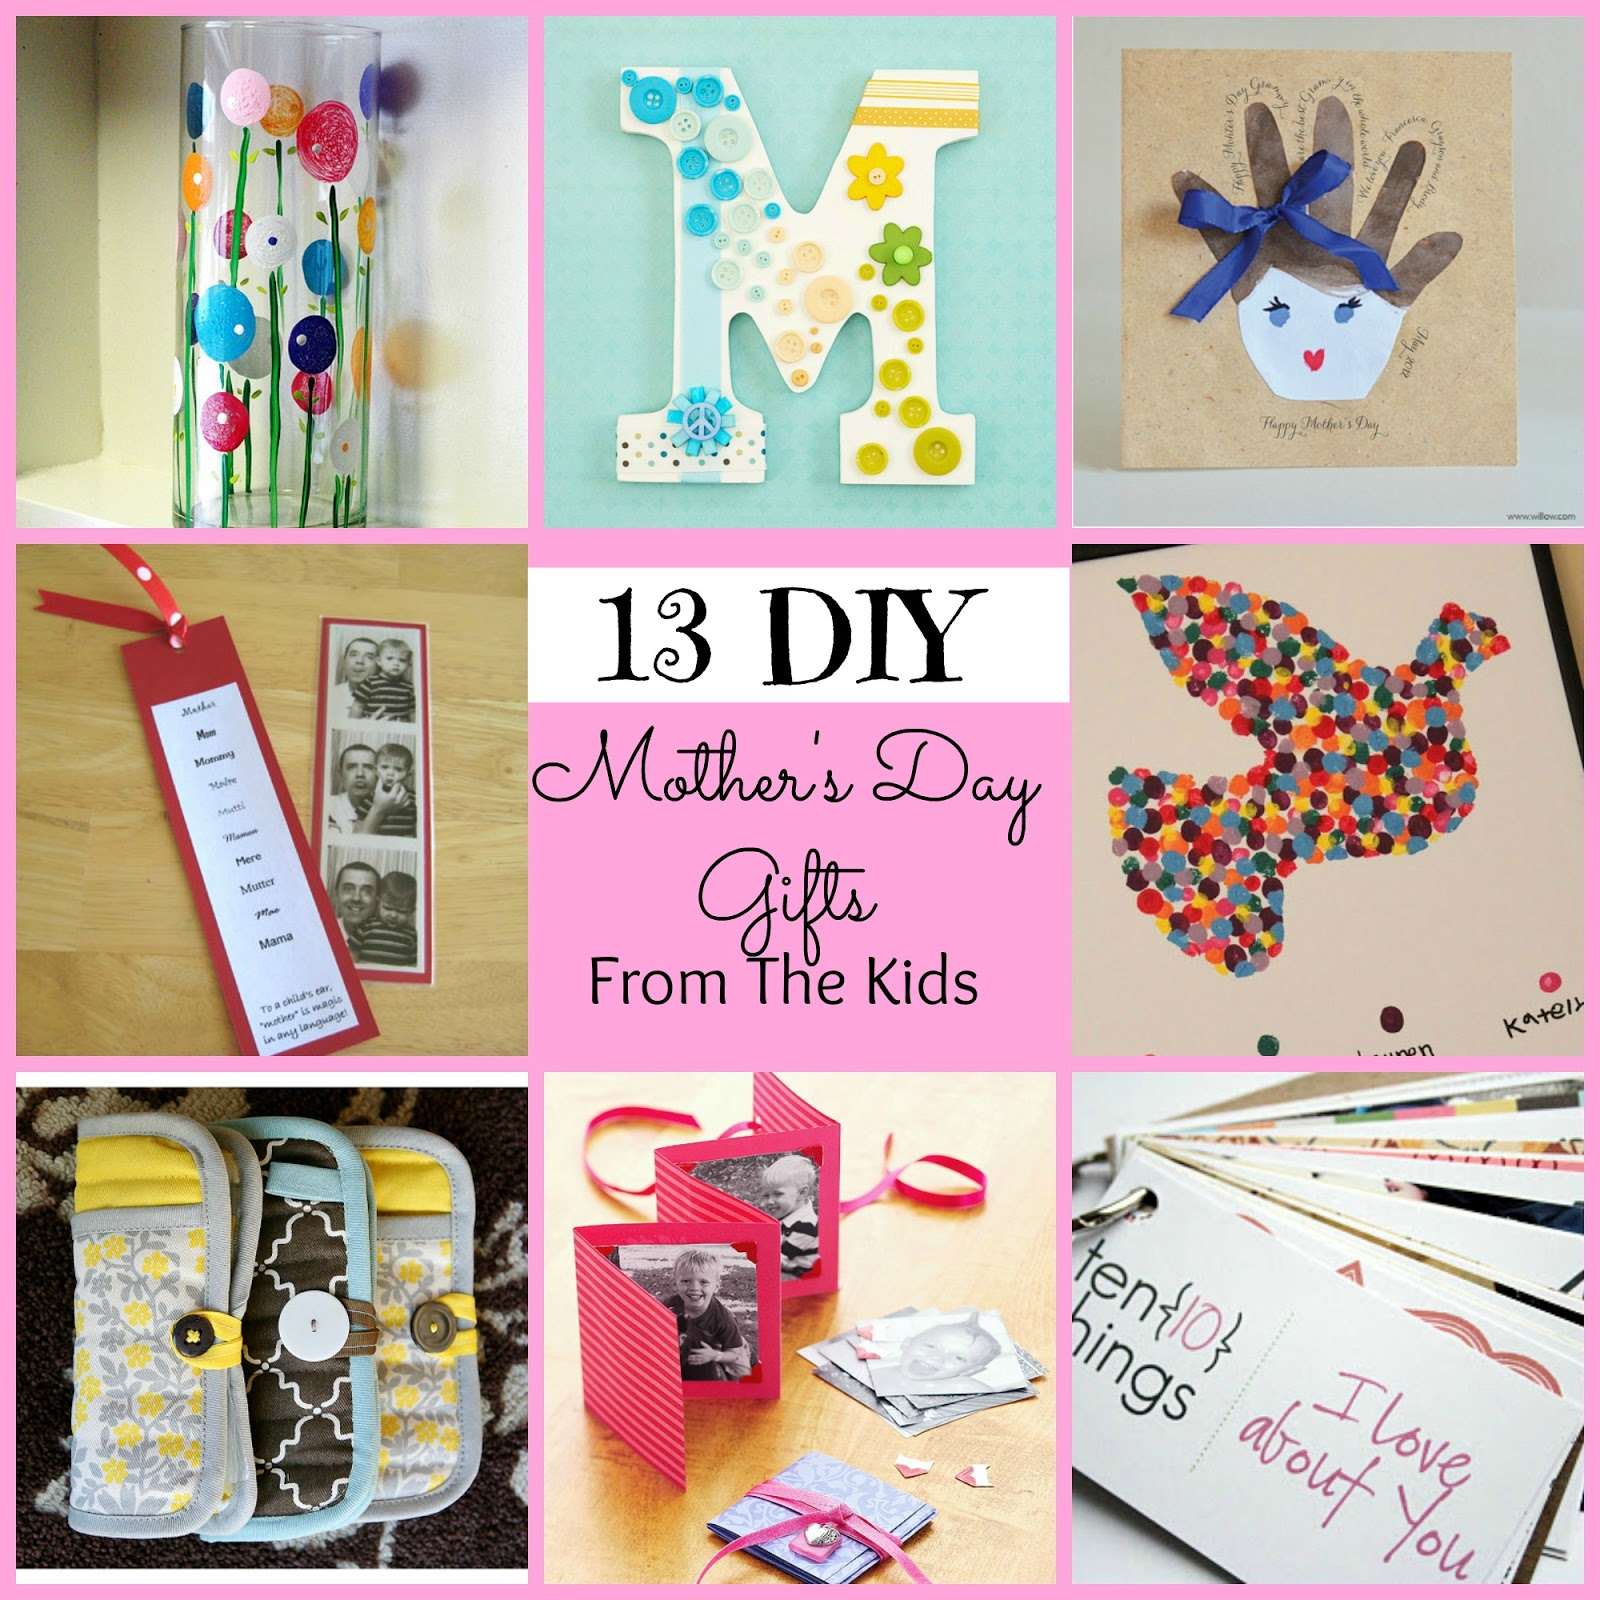 Awesome Diy Mother's Day Gifts Diy Mothers Day Gifts Craftbnb